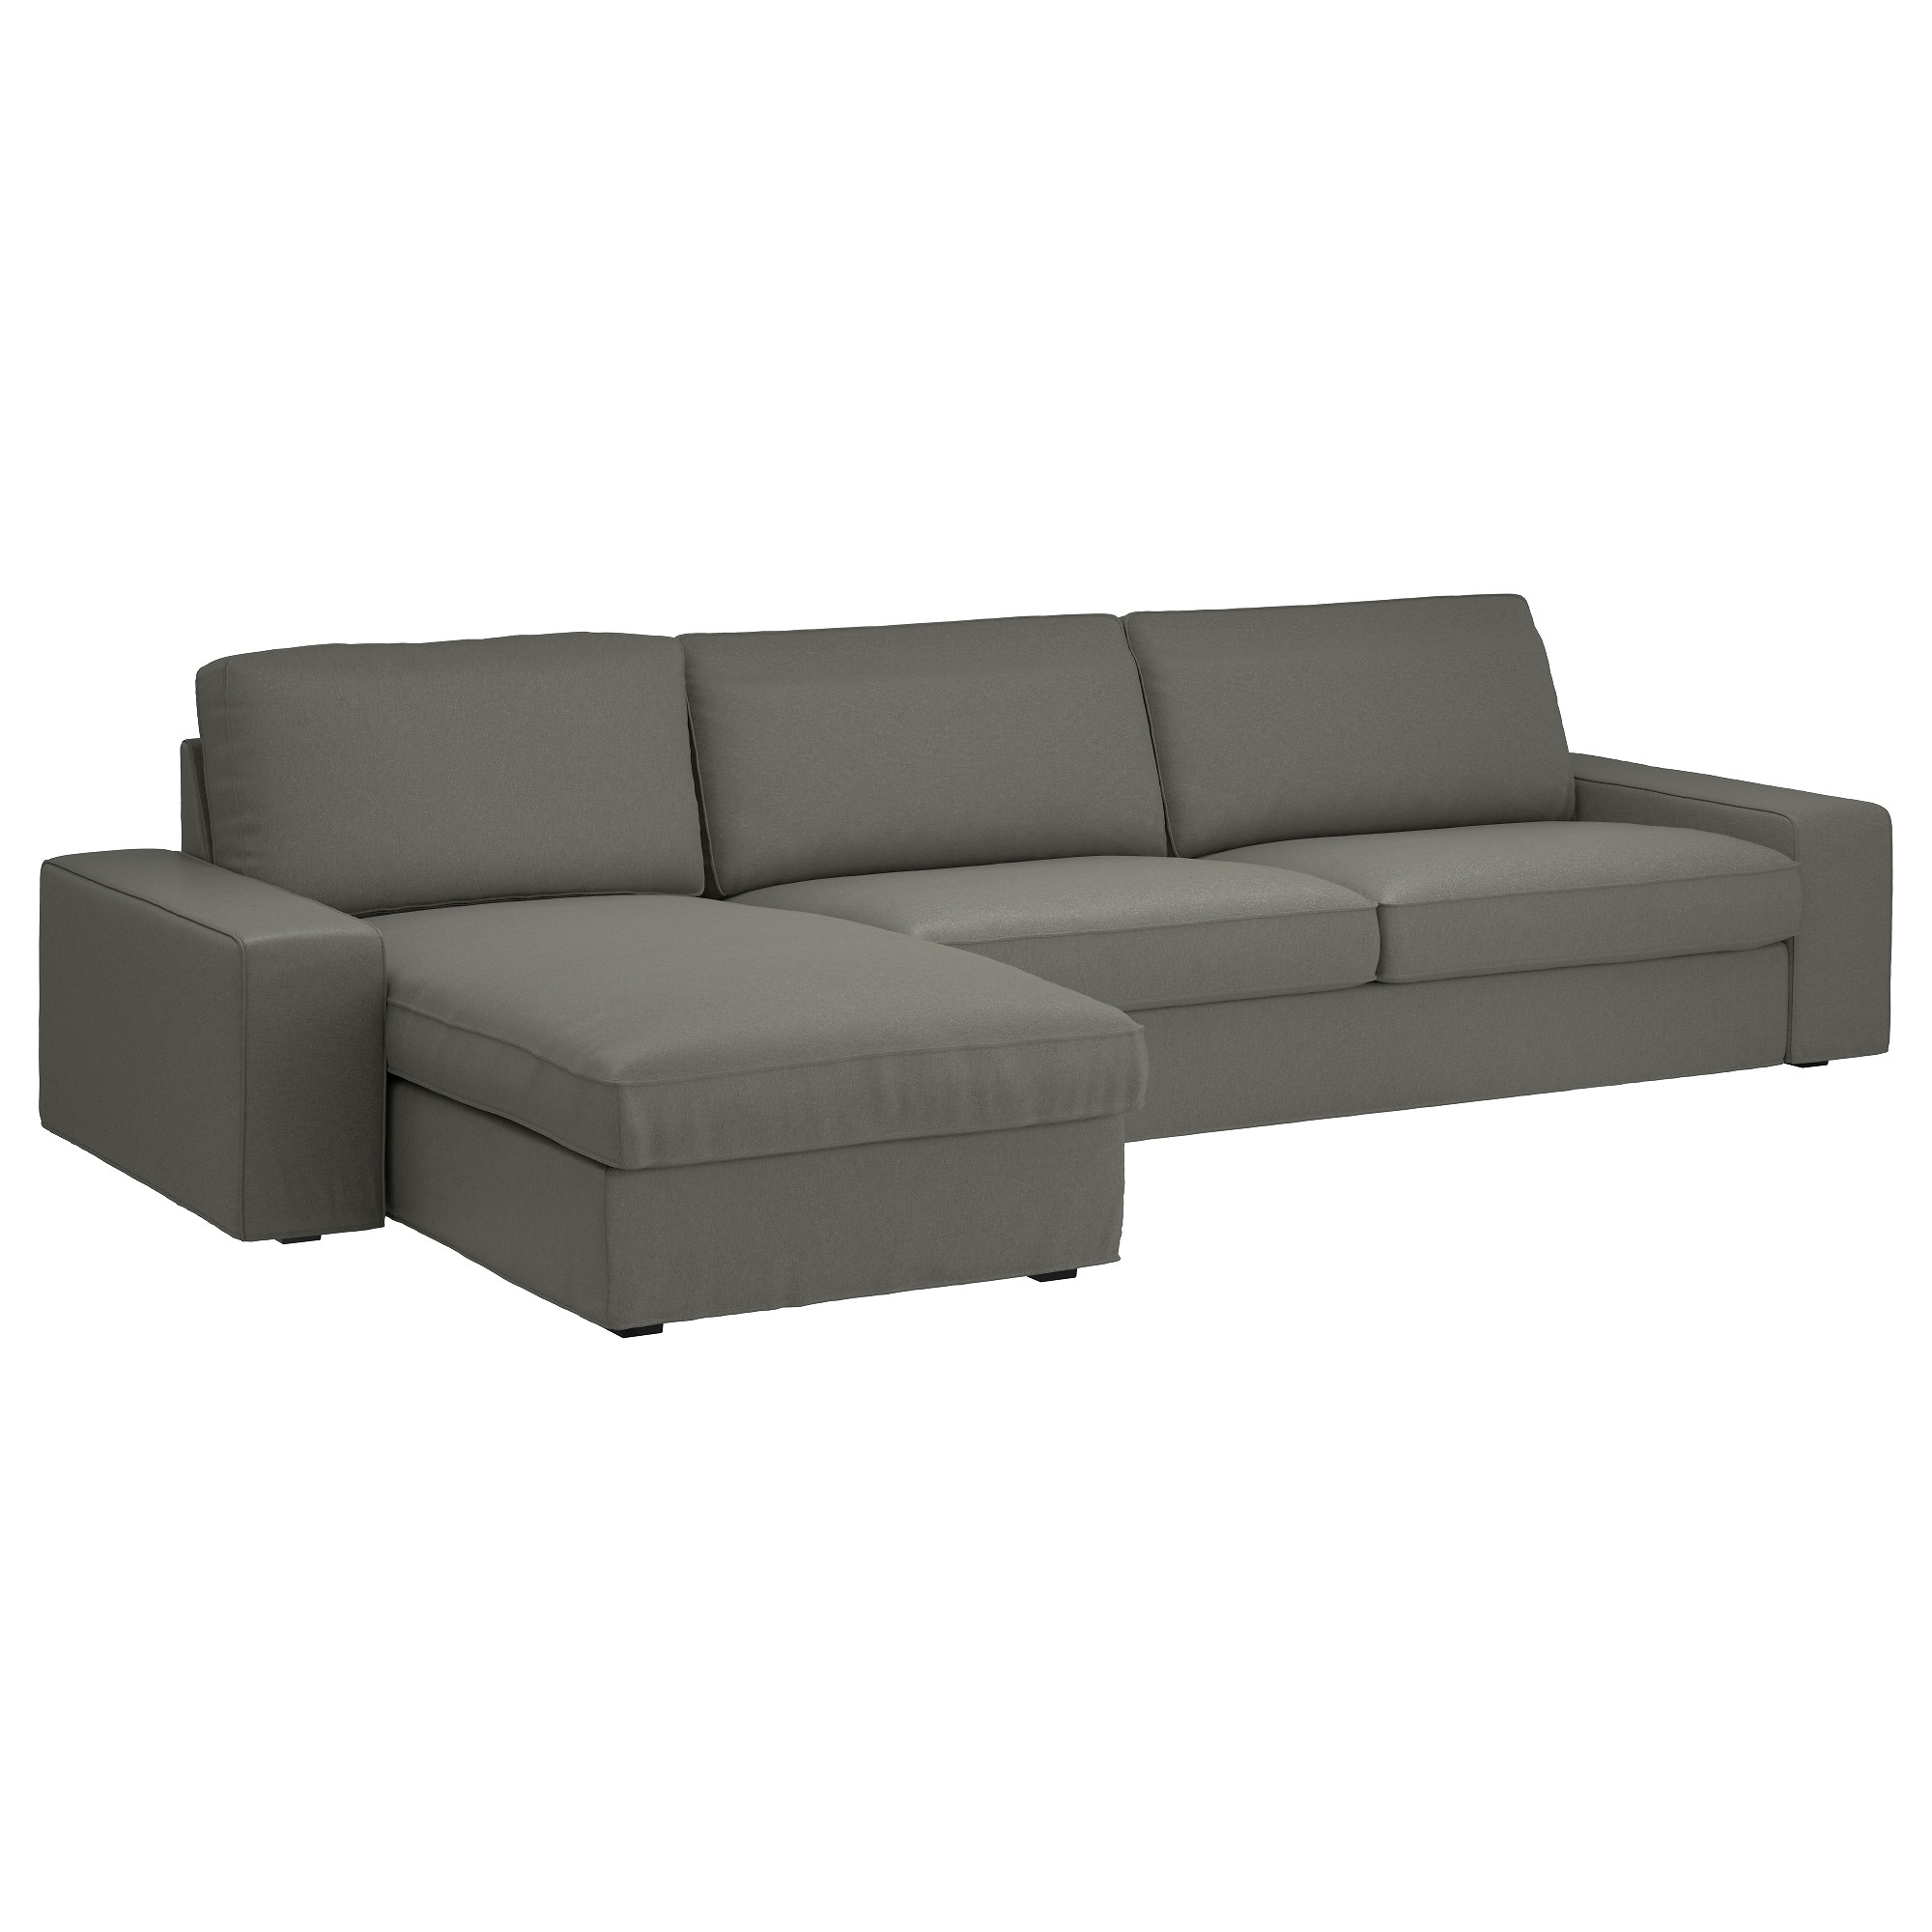 Ikea Chaise Lounges For Popular Kivik Sectional, 4 Seat – Hillared Beige – Ikea (View 4 of 15)